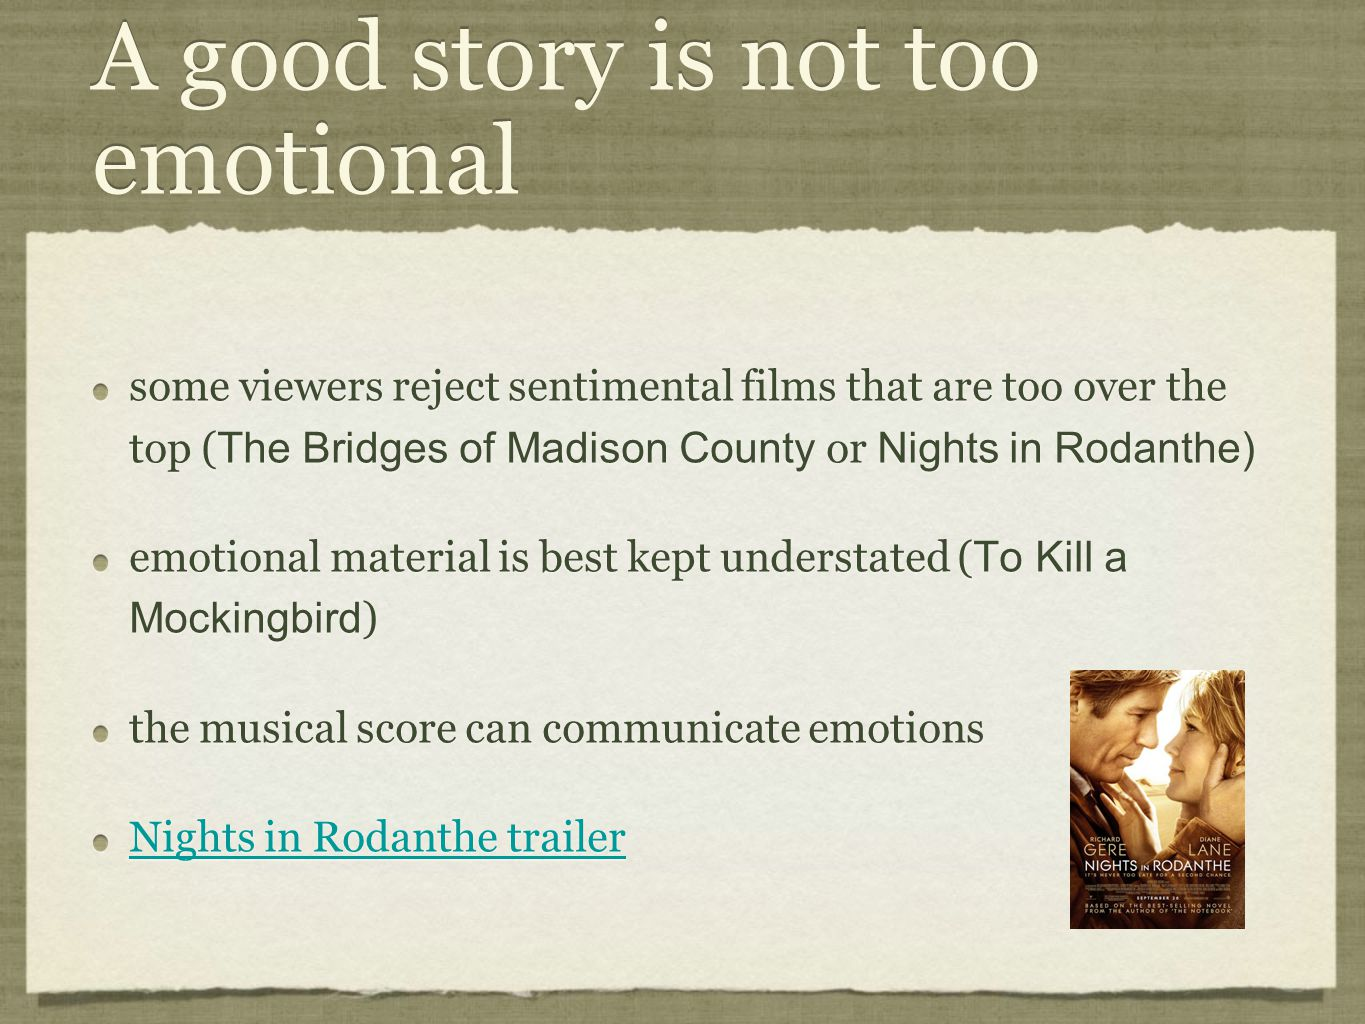 A good story is not too emotional